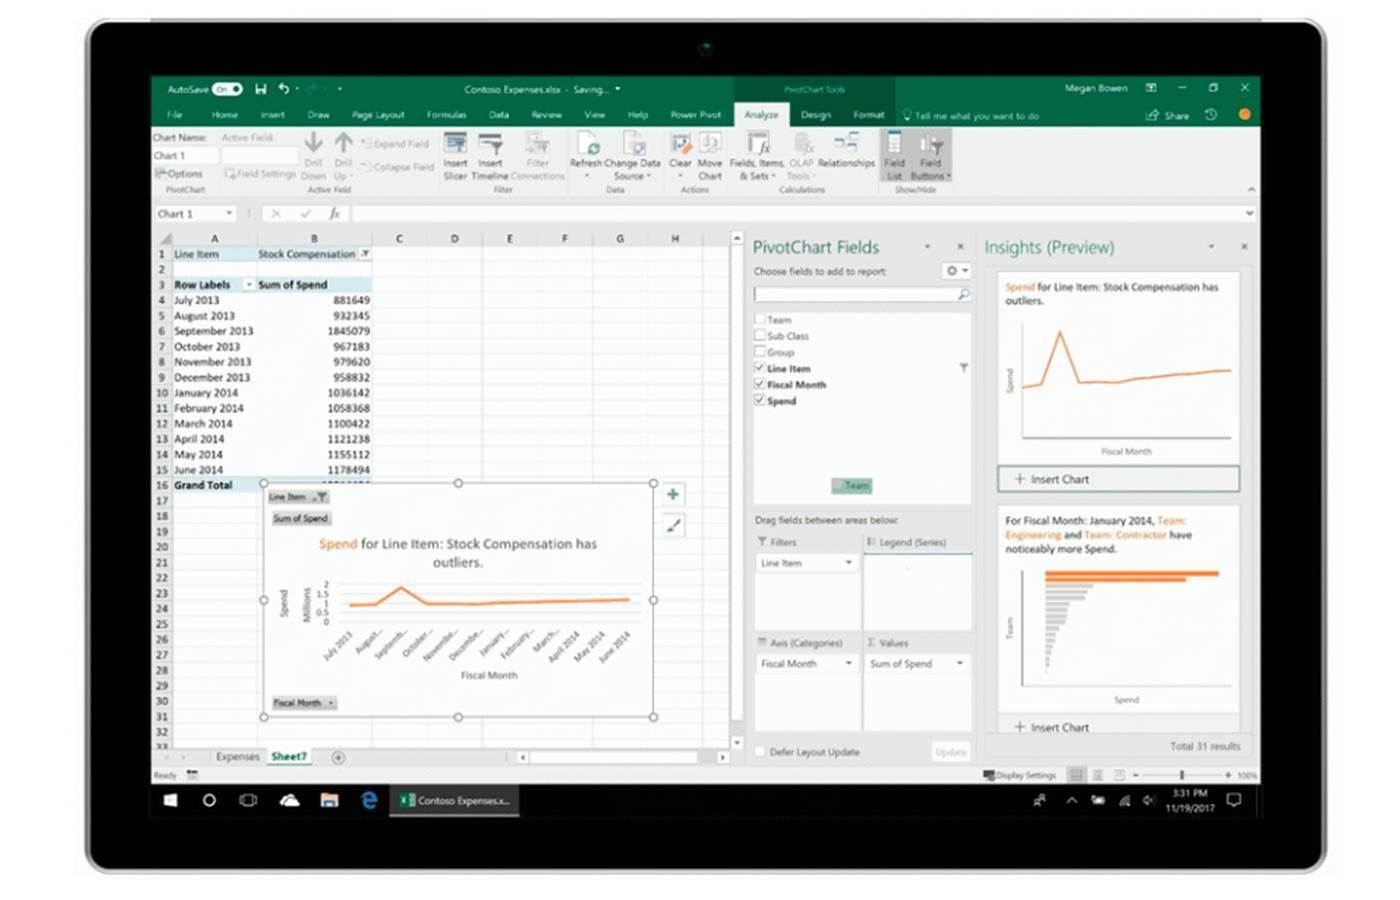 Microsoft bakes more AI into Office 365